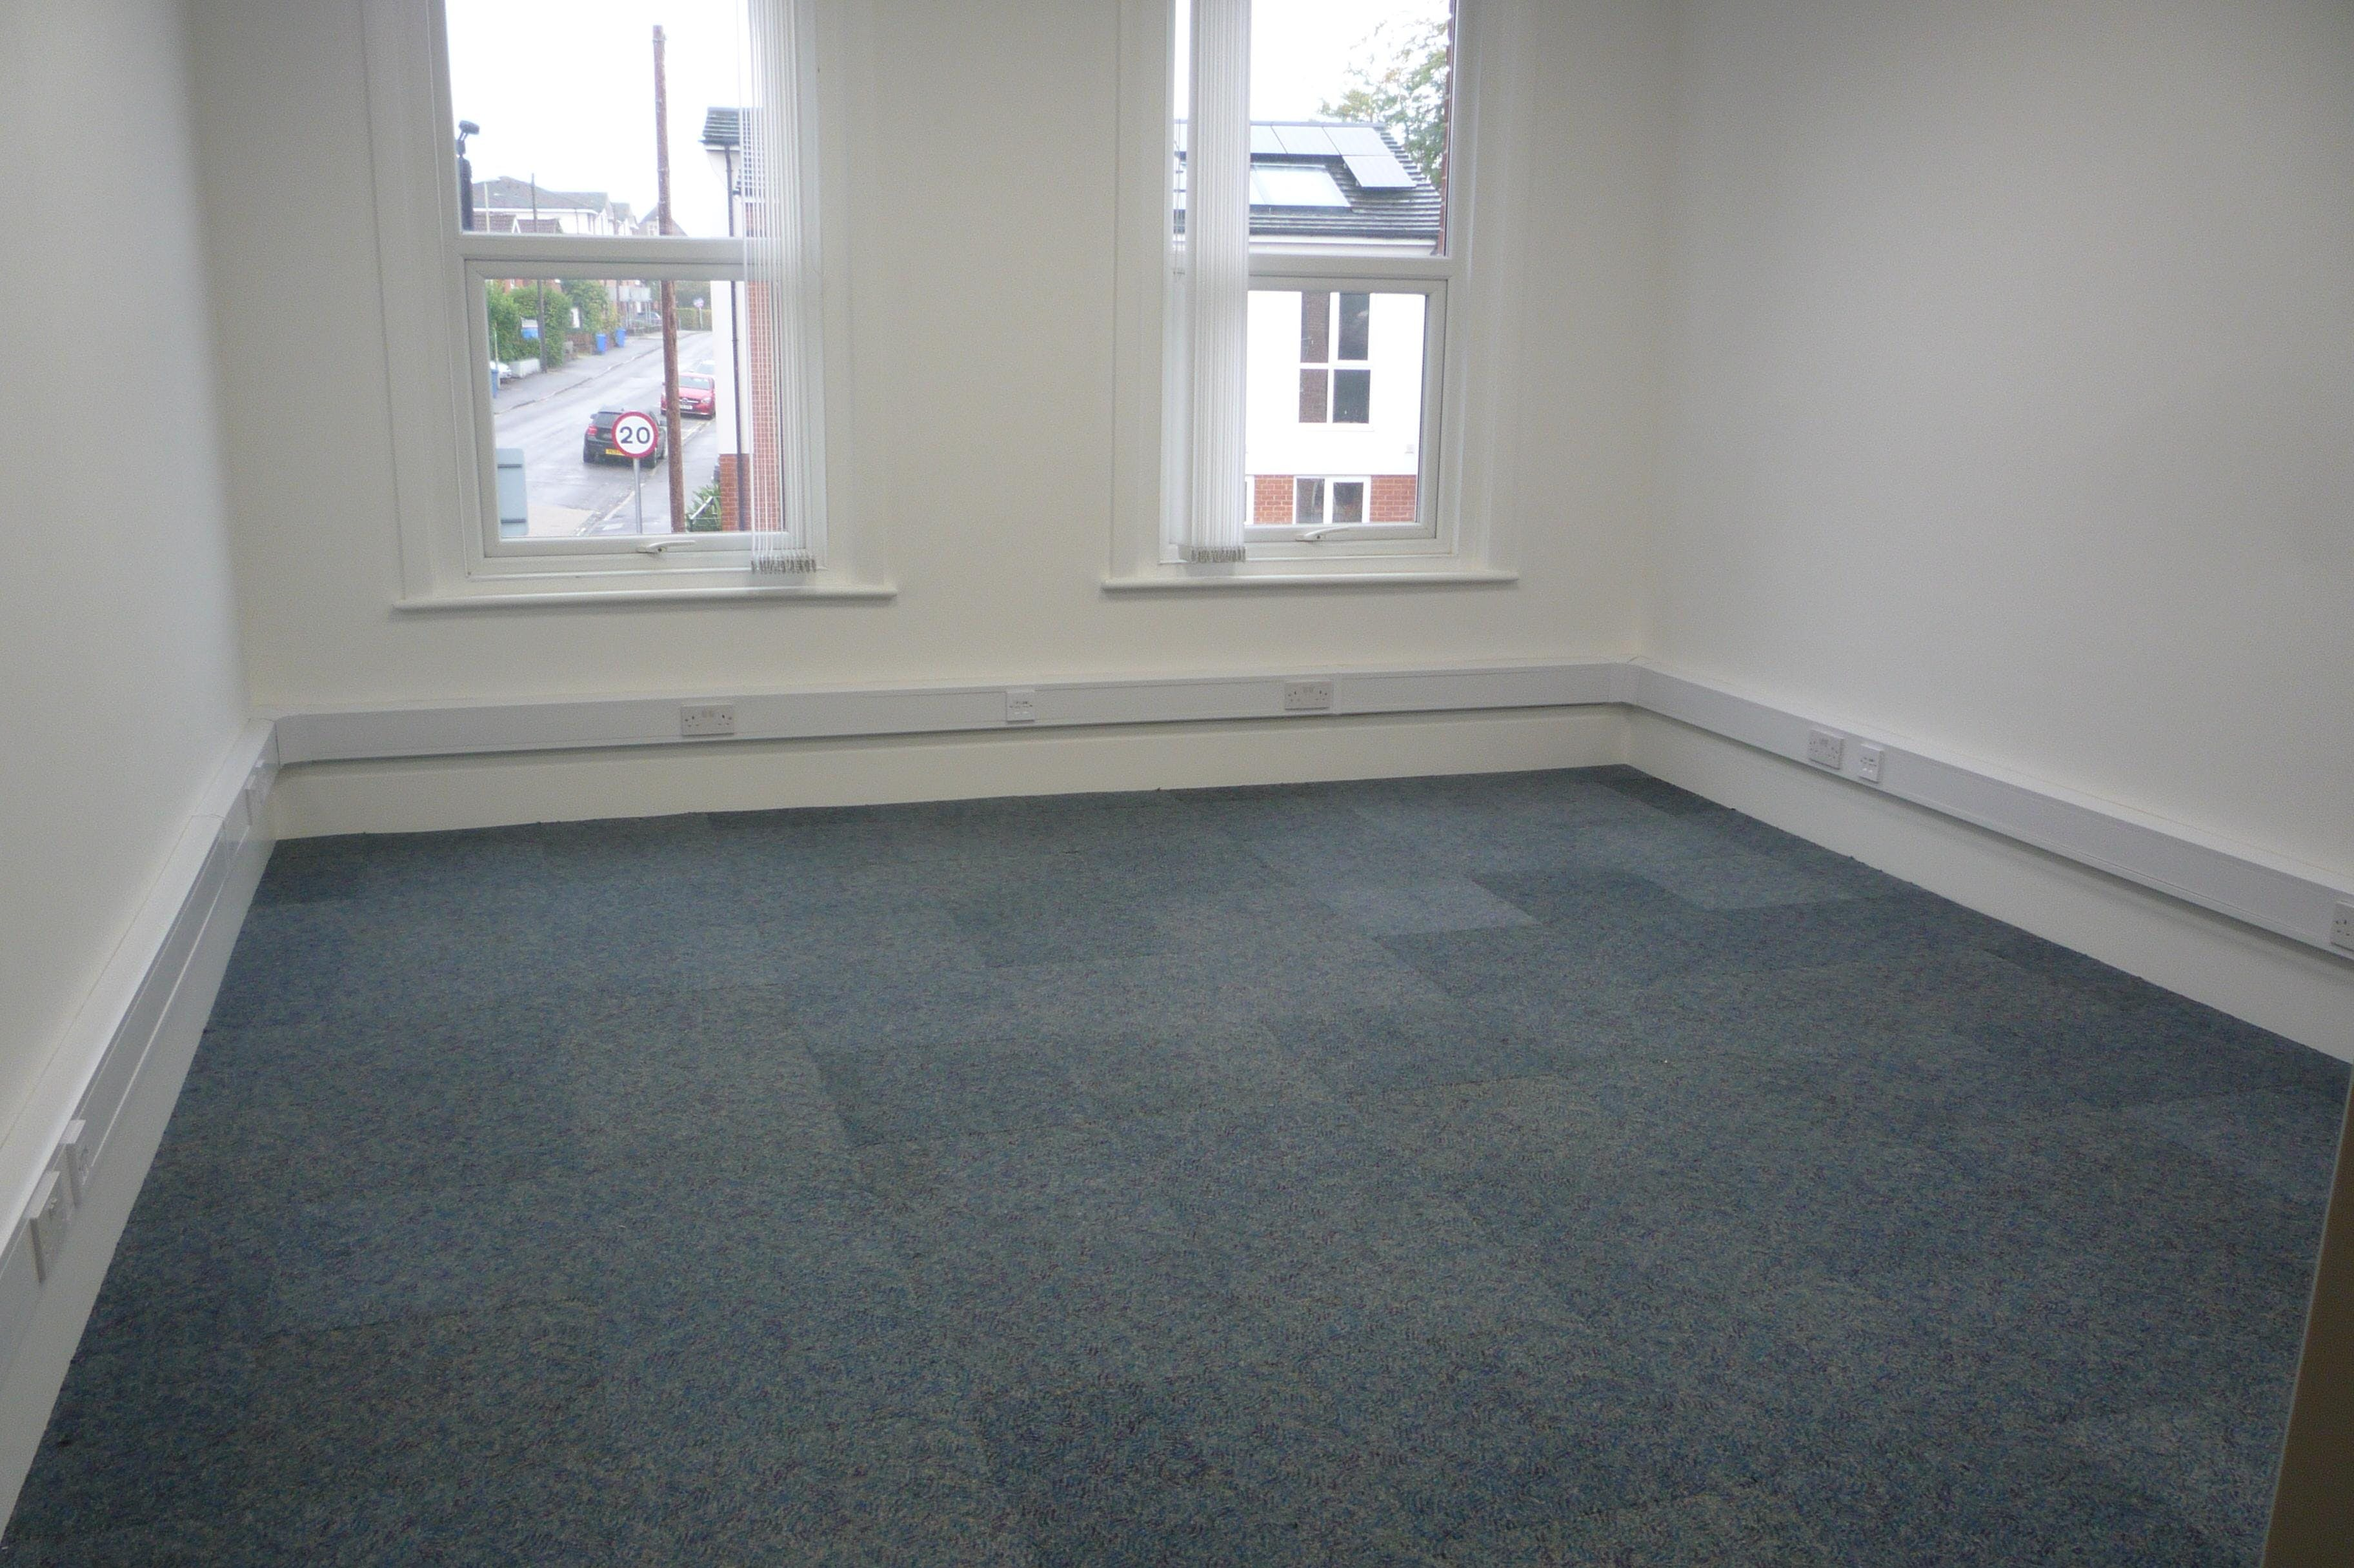 30 Reading Road South, Fleet, Offices To Let - P1040356.JPG